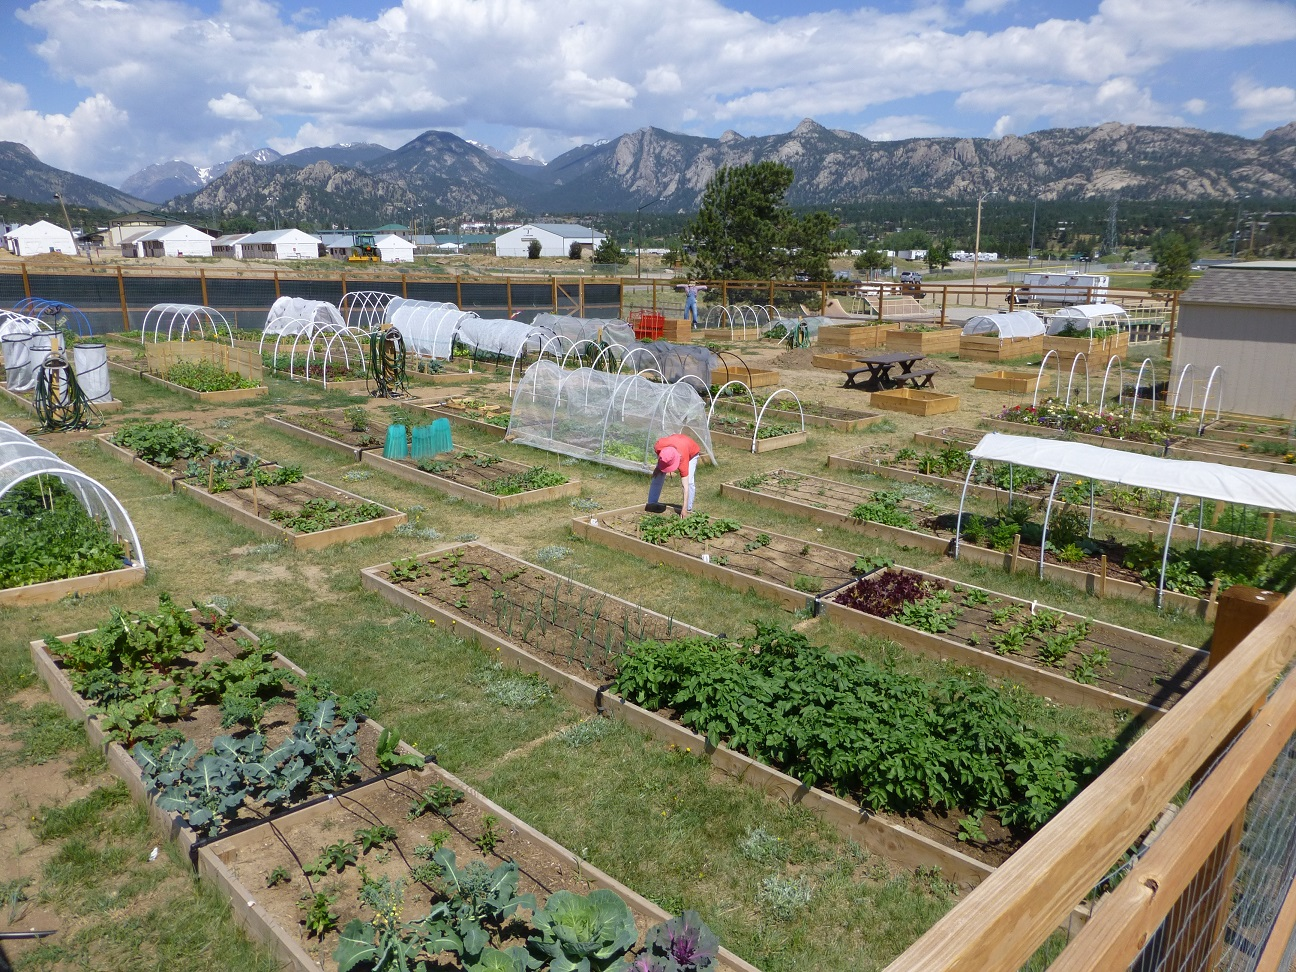 Image 1: Grants are available for projects that connect people to the land, such as a community garden like this one by past grant recipient Estes Valley Community Garden. Photo courtesy of EVCG.